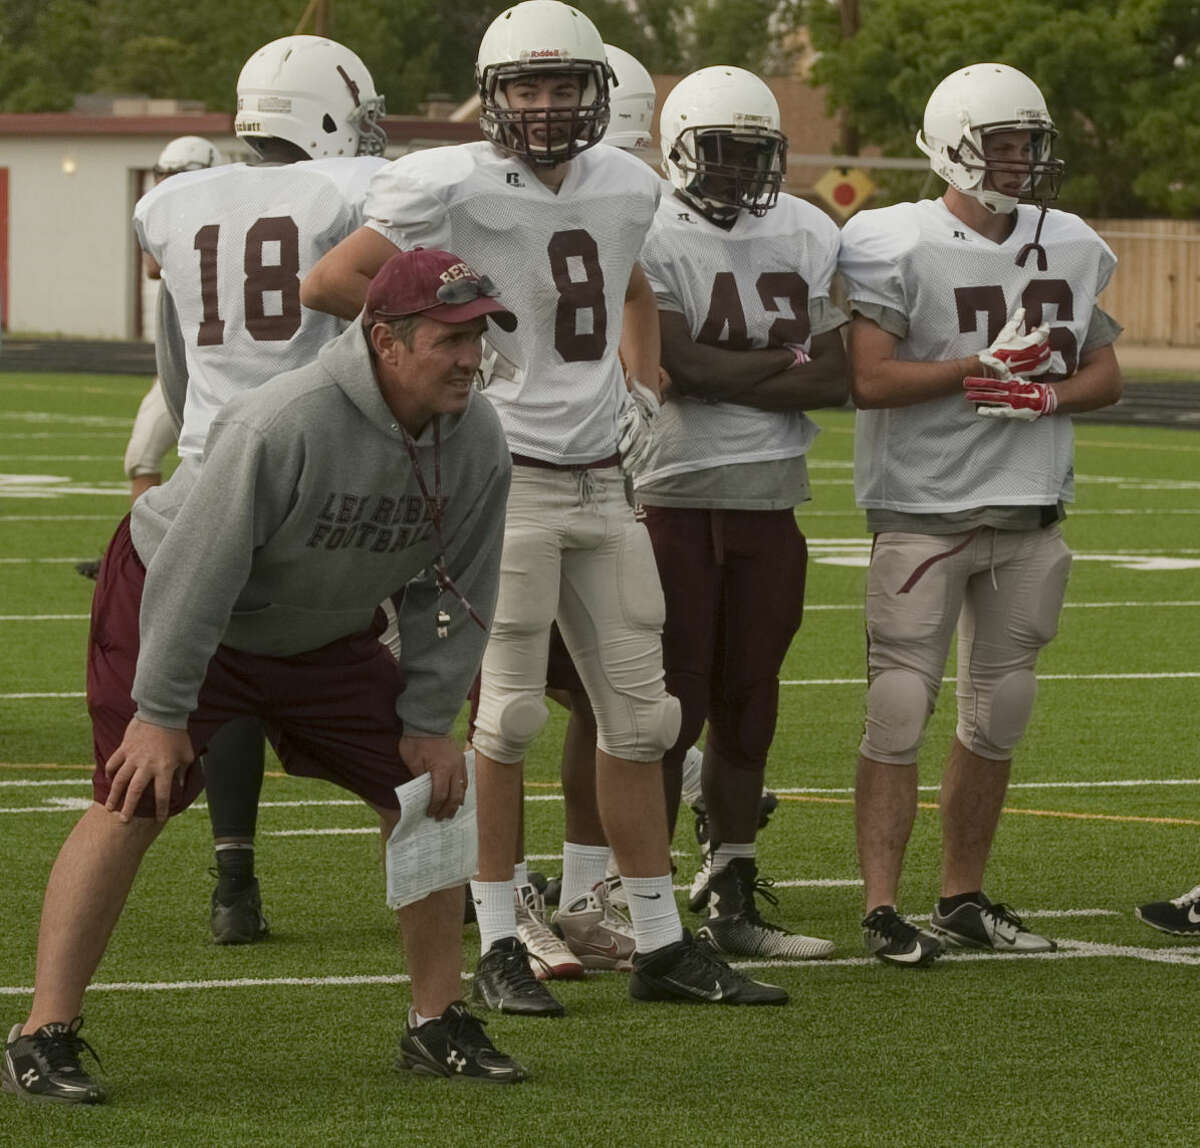 Lee head coach James Morton watches his players run drills Monday, 4-27-15, during the first day of spring practice. Tim Fischer\Reporter-Telegram